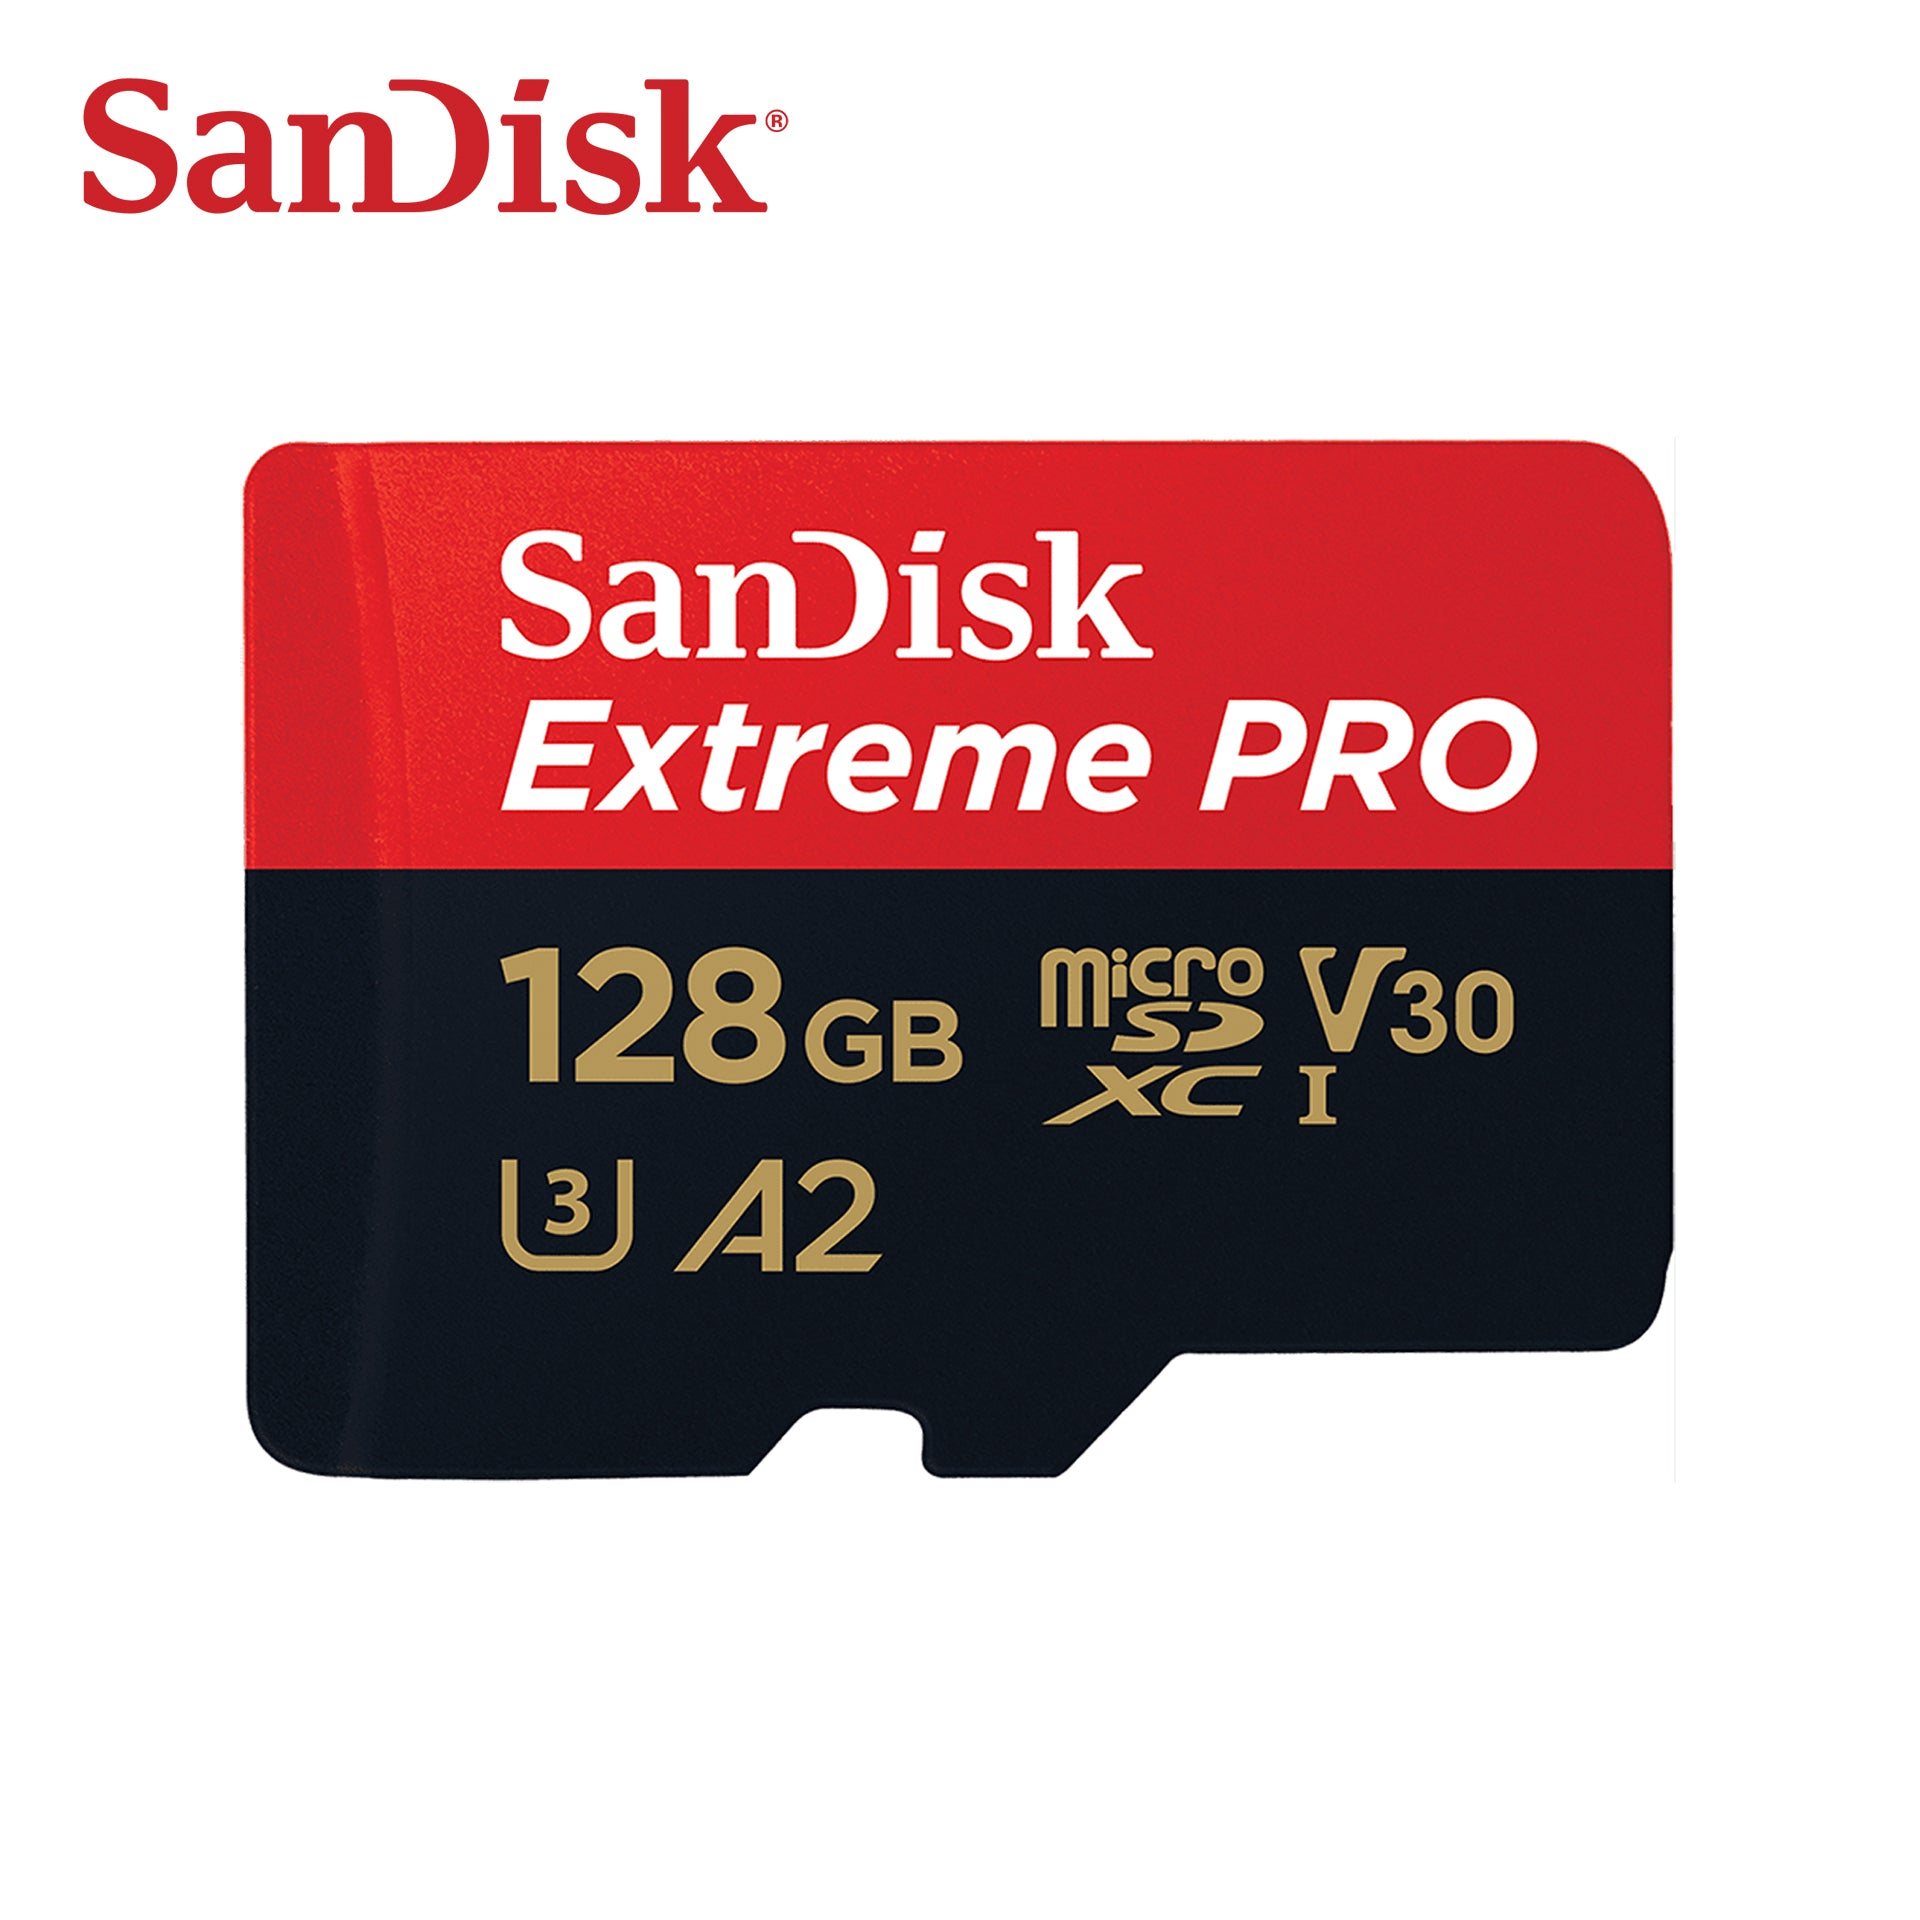 SanDisk Extreme PRO microSD Card